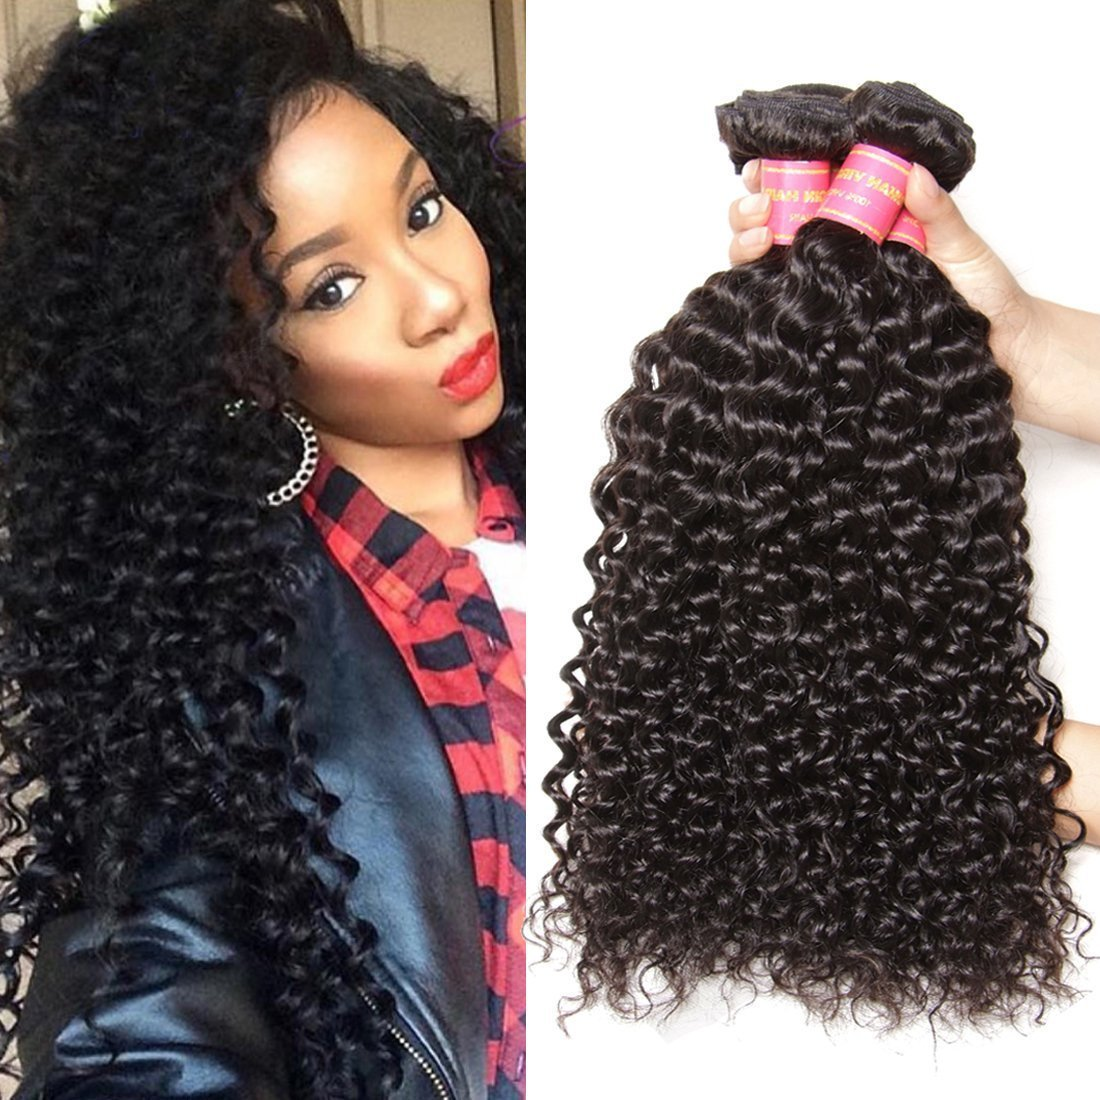 Jolia Hair Virgin Brazilian Curly Hair Weave 3 Bundles 7a